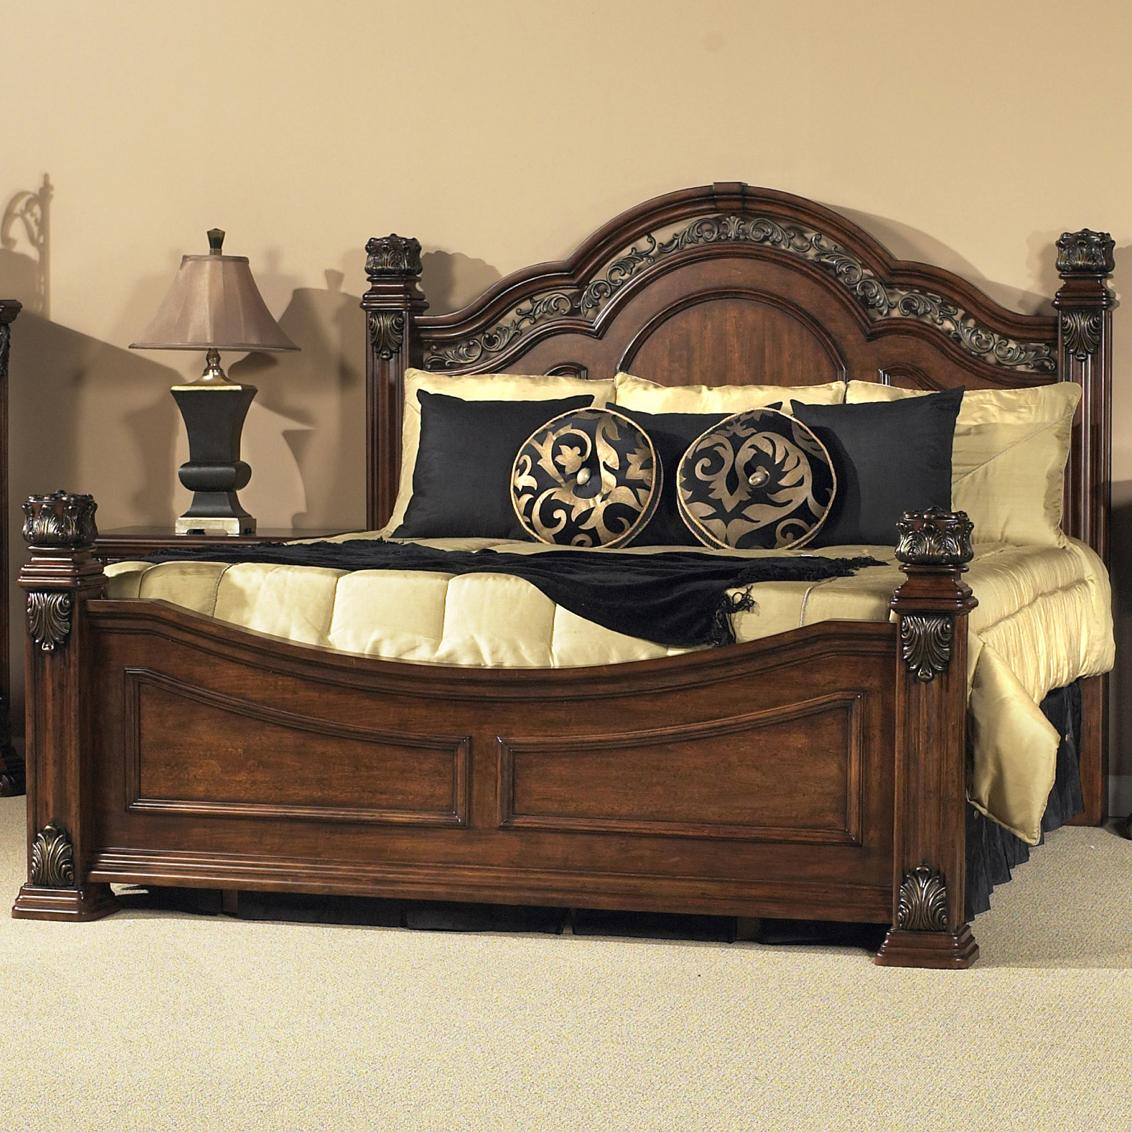 Liberty Furniture Messina Estates King Poster Bed - Item Number: 737-BR03+BR04+2xBR73